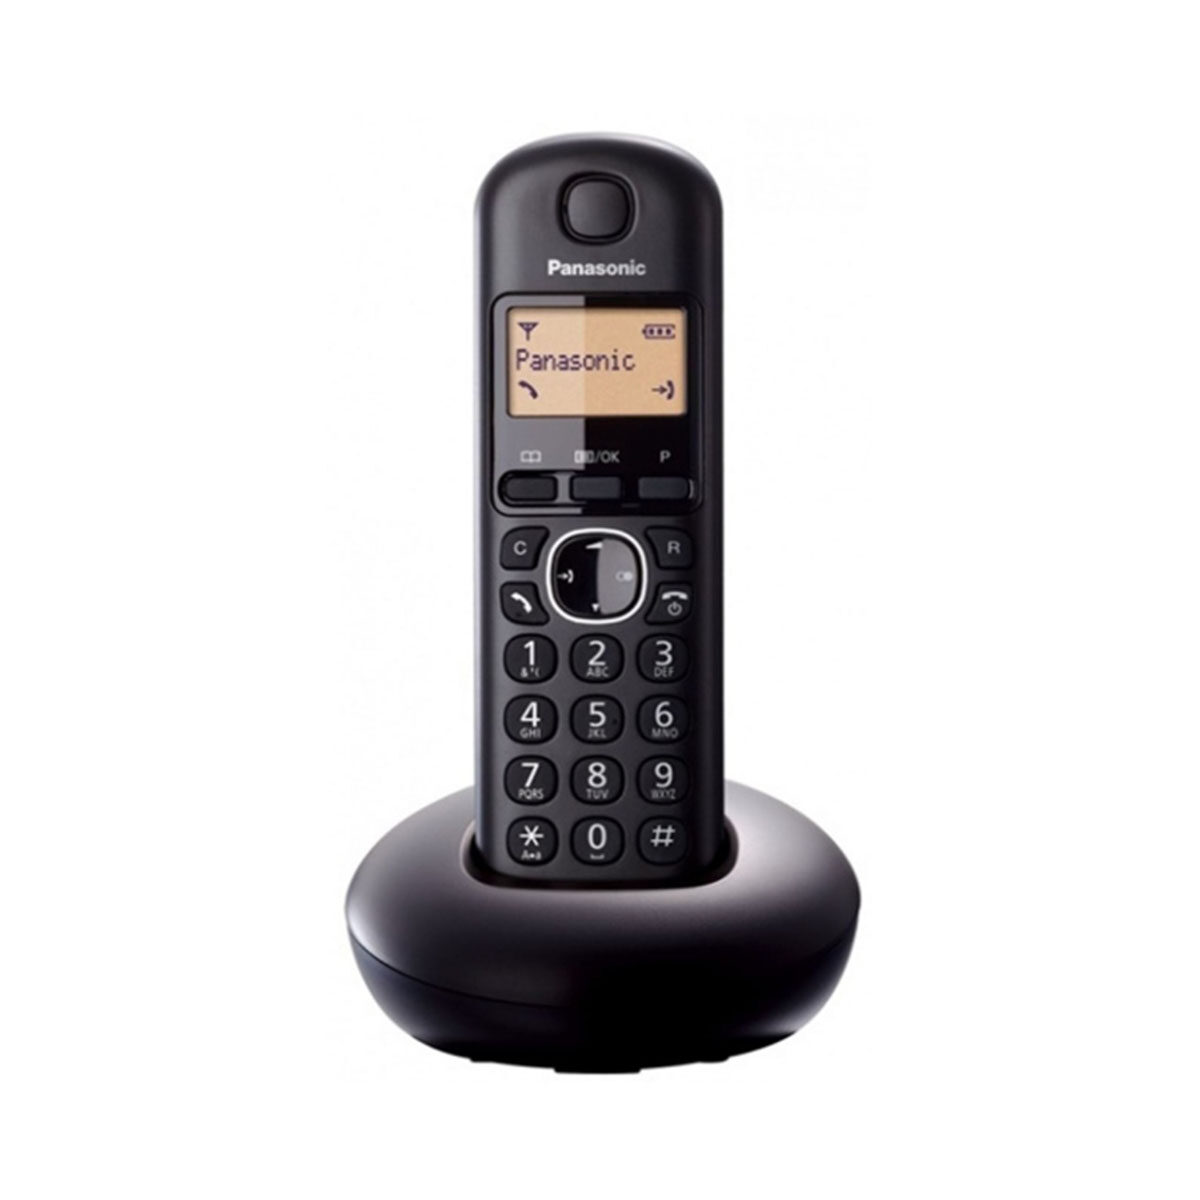 Panasonic Digital Cordless Phone KX-TGB210 Blacklit LCD Display with Caller ID, 10 Number Redial Memory, 9 Language Support, Compact Design, 16 Hours Talk Time, 280 Hours Standby Time